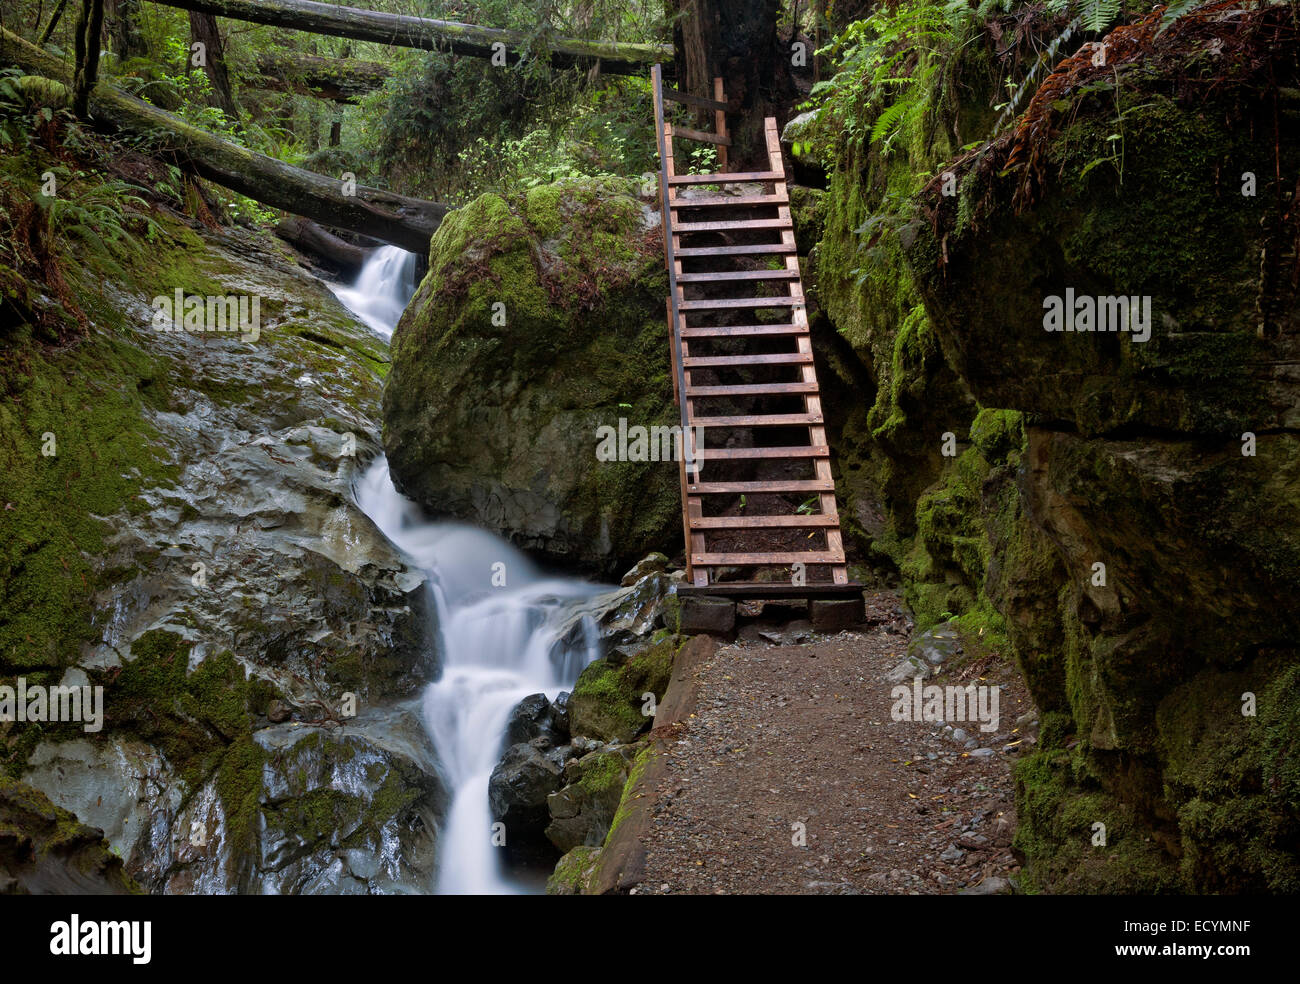 CA02573-00...CALIFORNIA - The Ladder on Steep Ravine Trail as it parallels Webb Creek in Mount Tamalpais State Park. - Stock Image